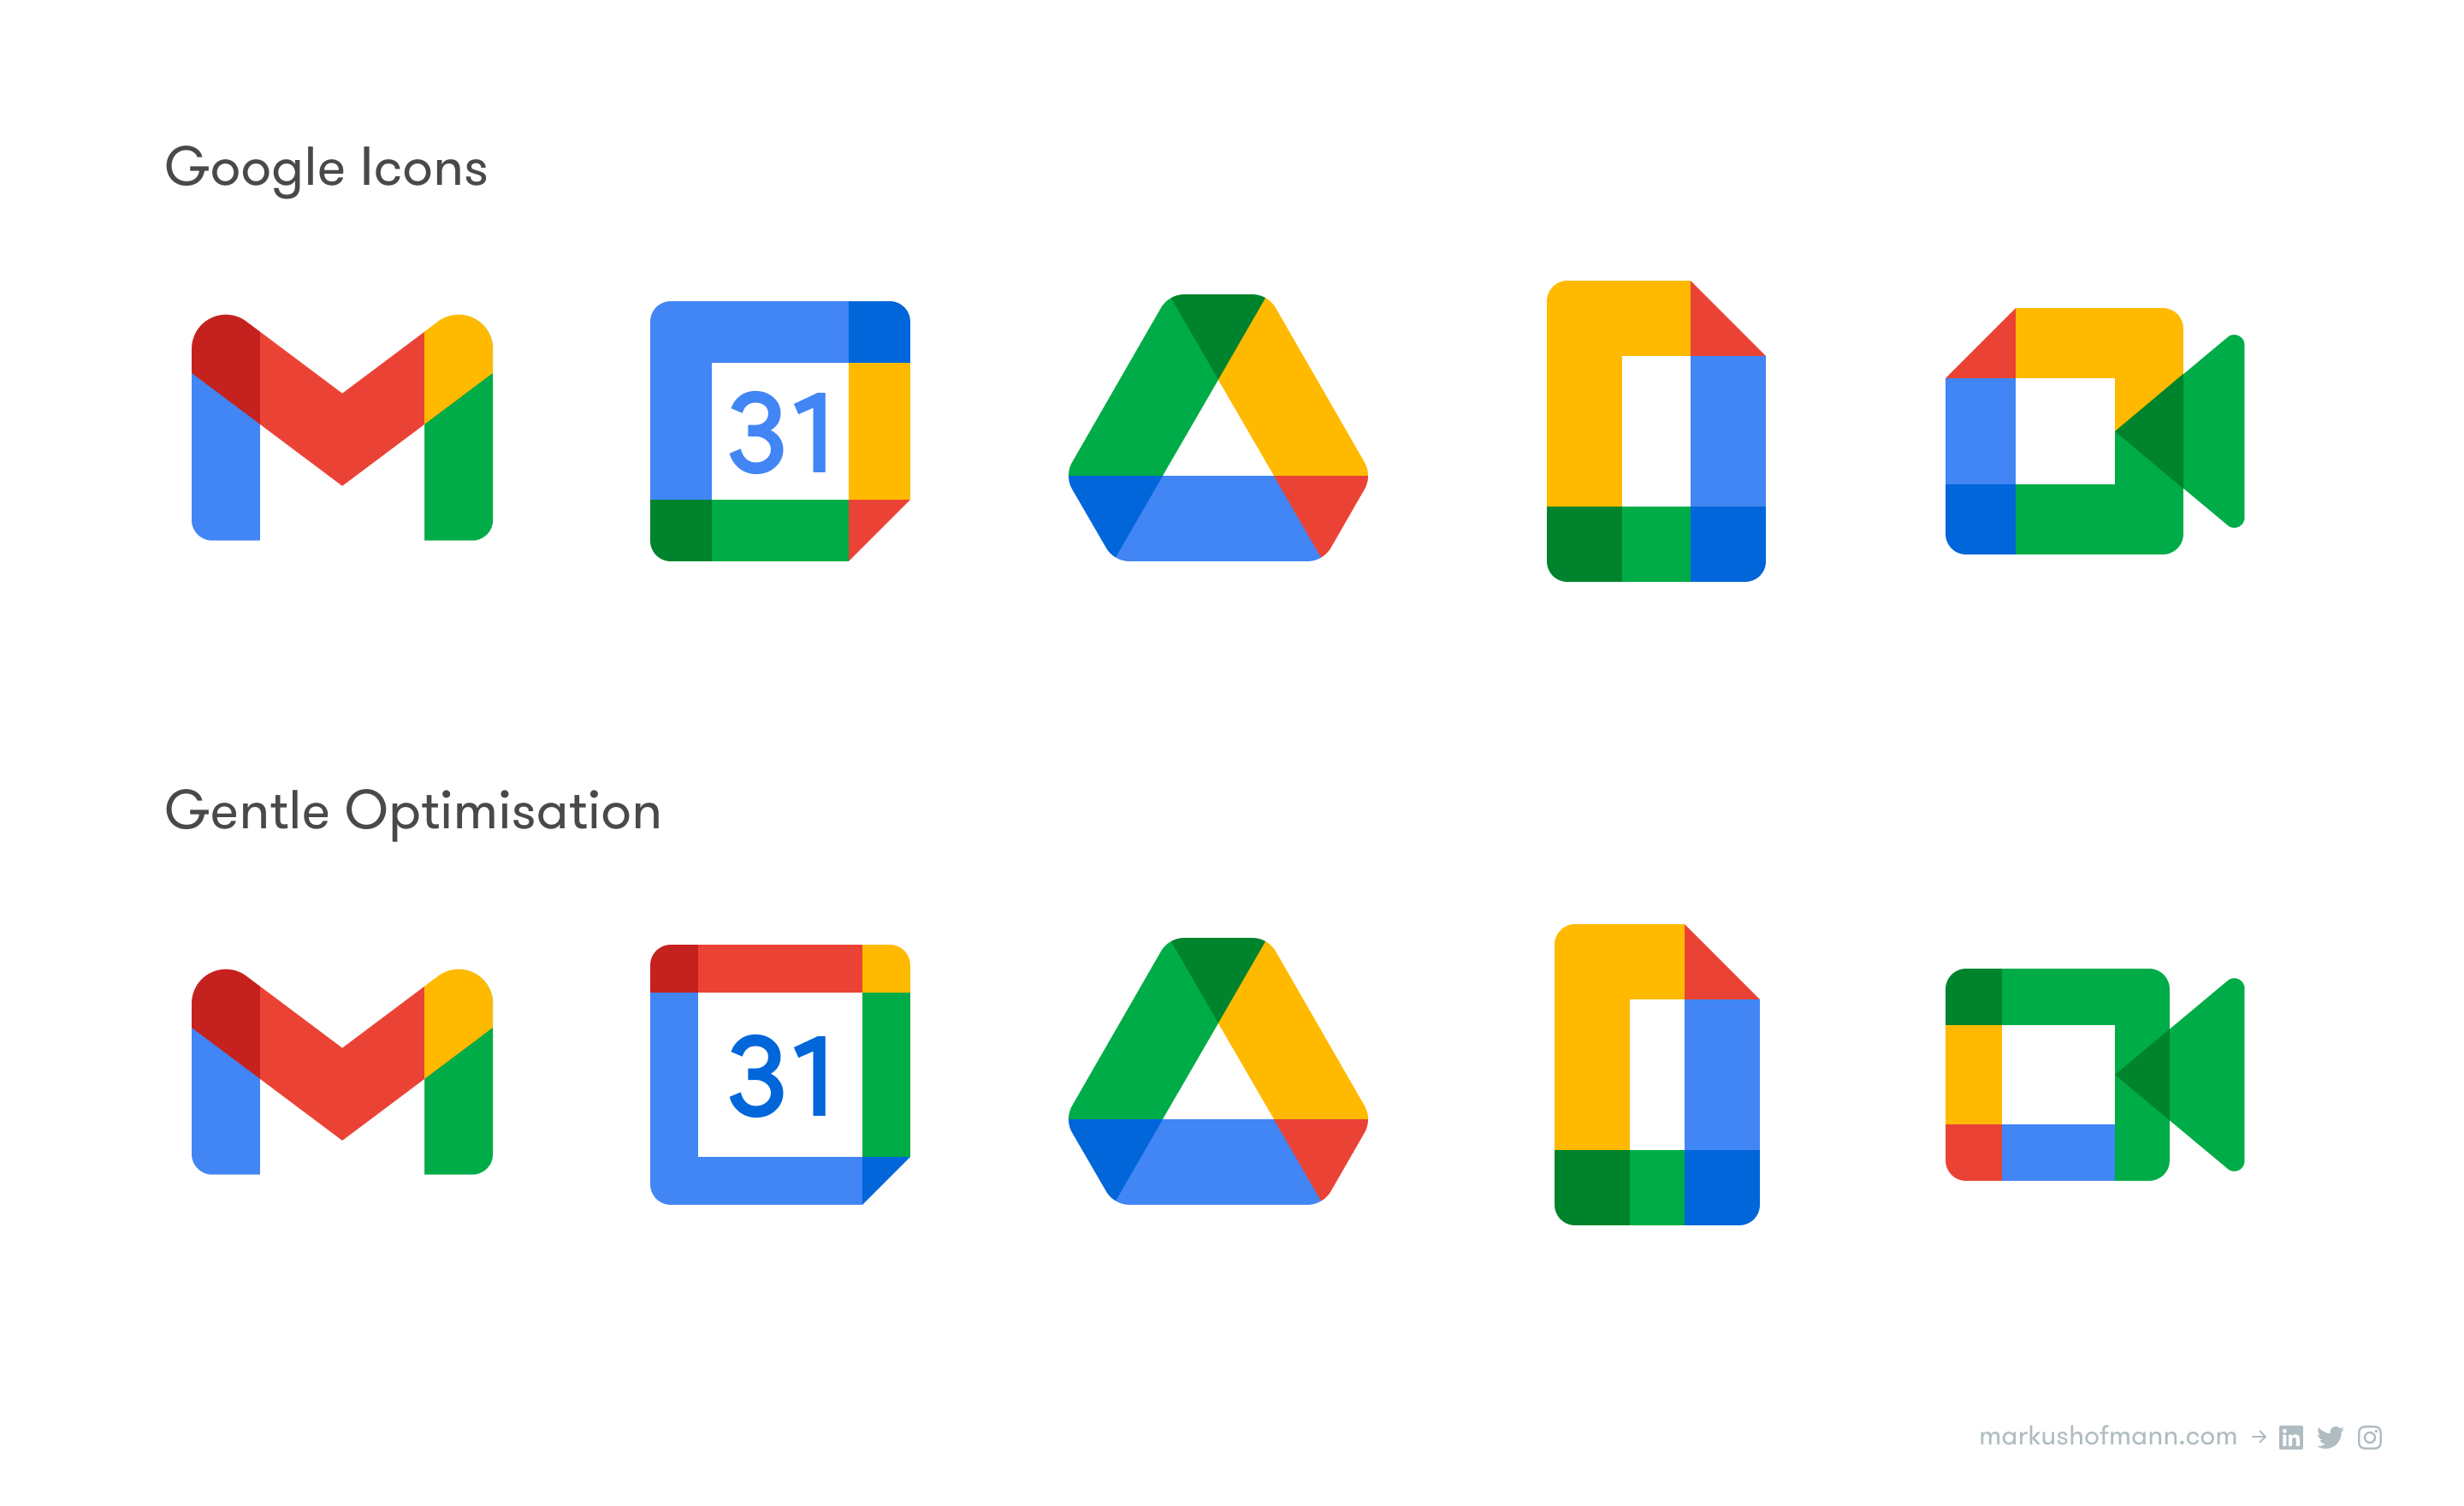 Comparison of Google's new Workplace icons and my optimised, more distinct versions